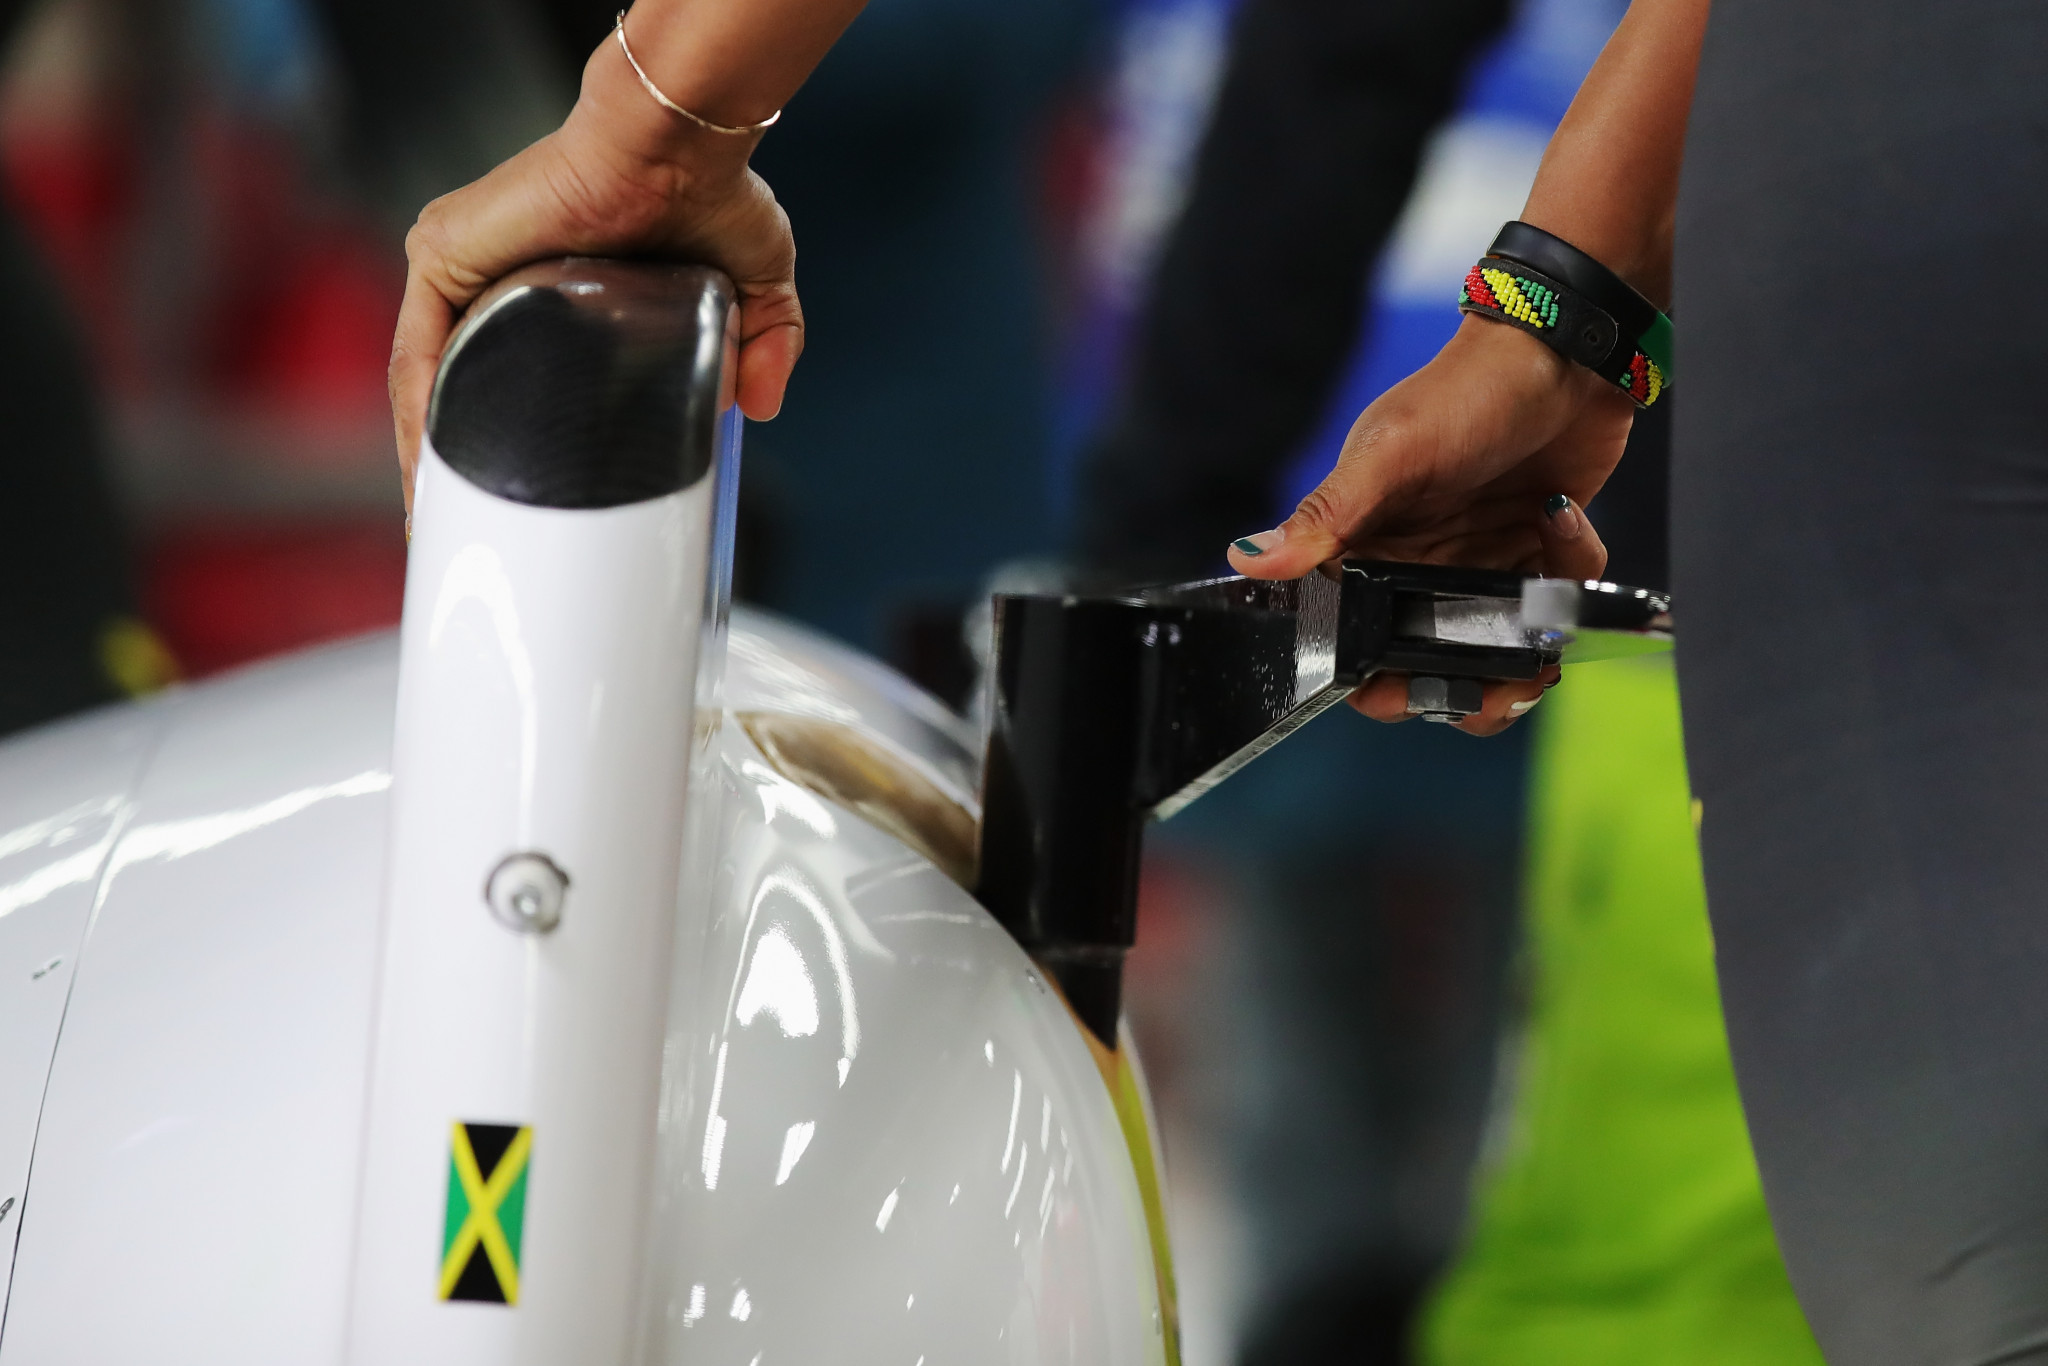 The Jamaica Bobsleigh and Skeleton Federation paid tribute to former athlete Sam Clayton Jr ©Getty Images